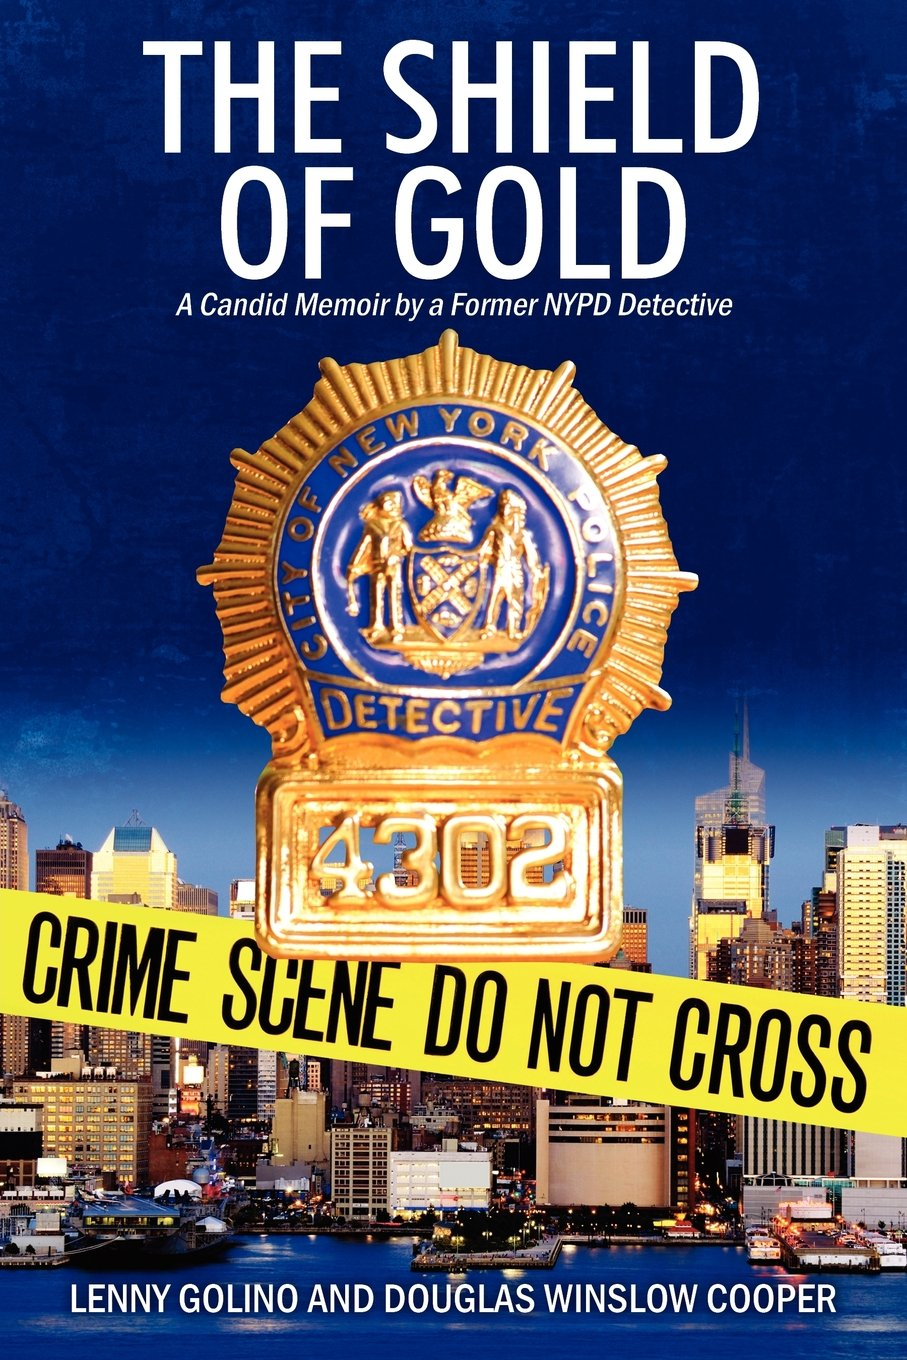 The shield of gold a candid memoir by a former nypd detective the shield of gold a candid memoir by a former nypd detective lenny golino douglas winslow cooper 9781478719533 amazon books reheart Choice Image